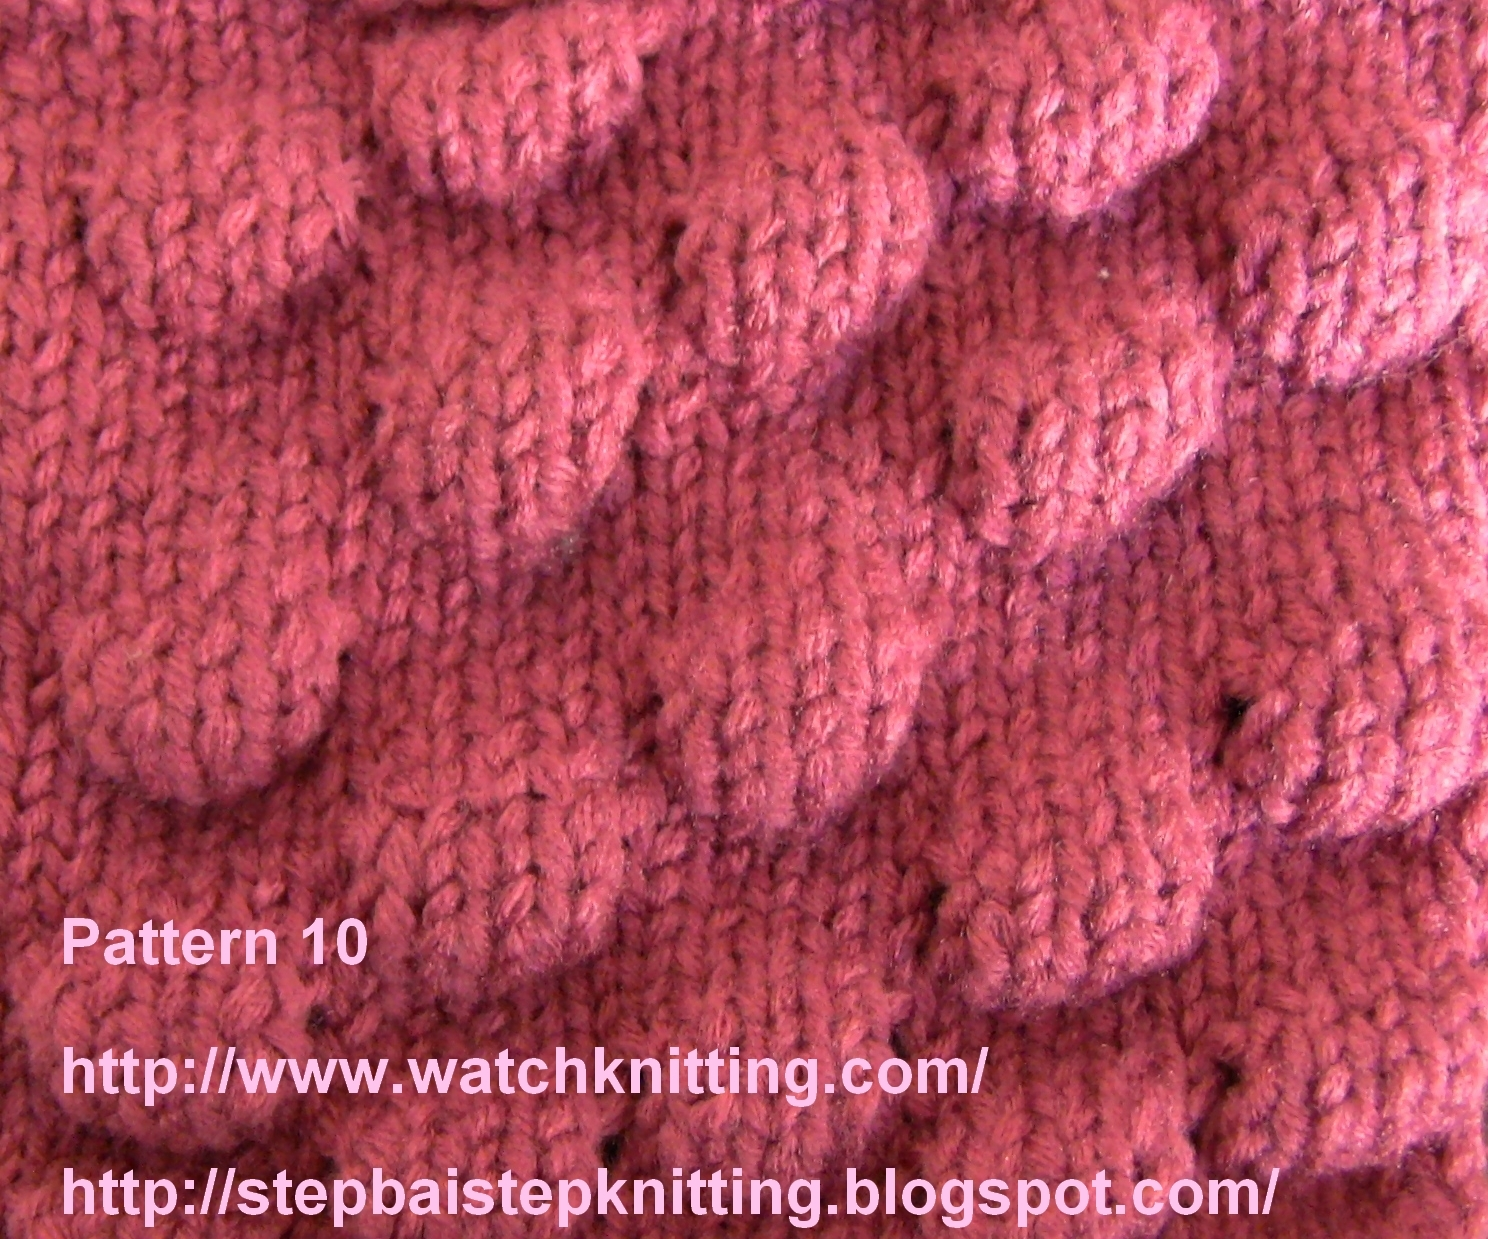 Knitting Stitches Pattern : Embossed Knitting Models/Patterns (Knobby model)